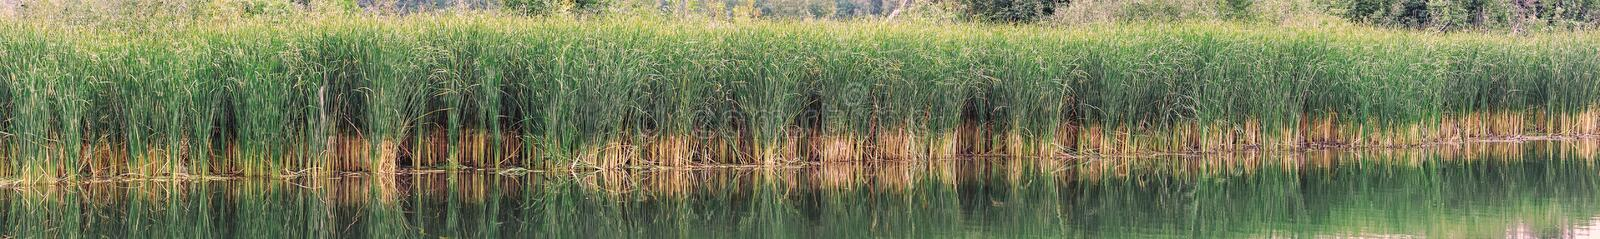 Reed, sedge or reed on lake or pond stock images